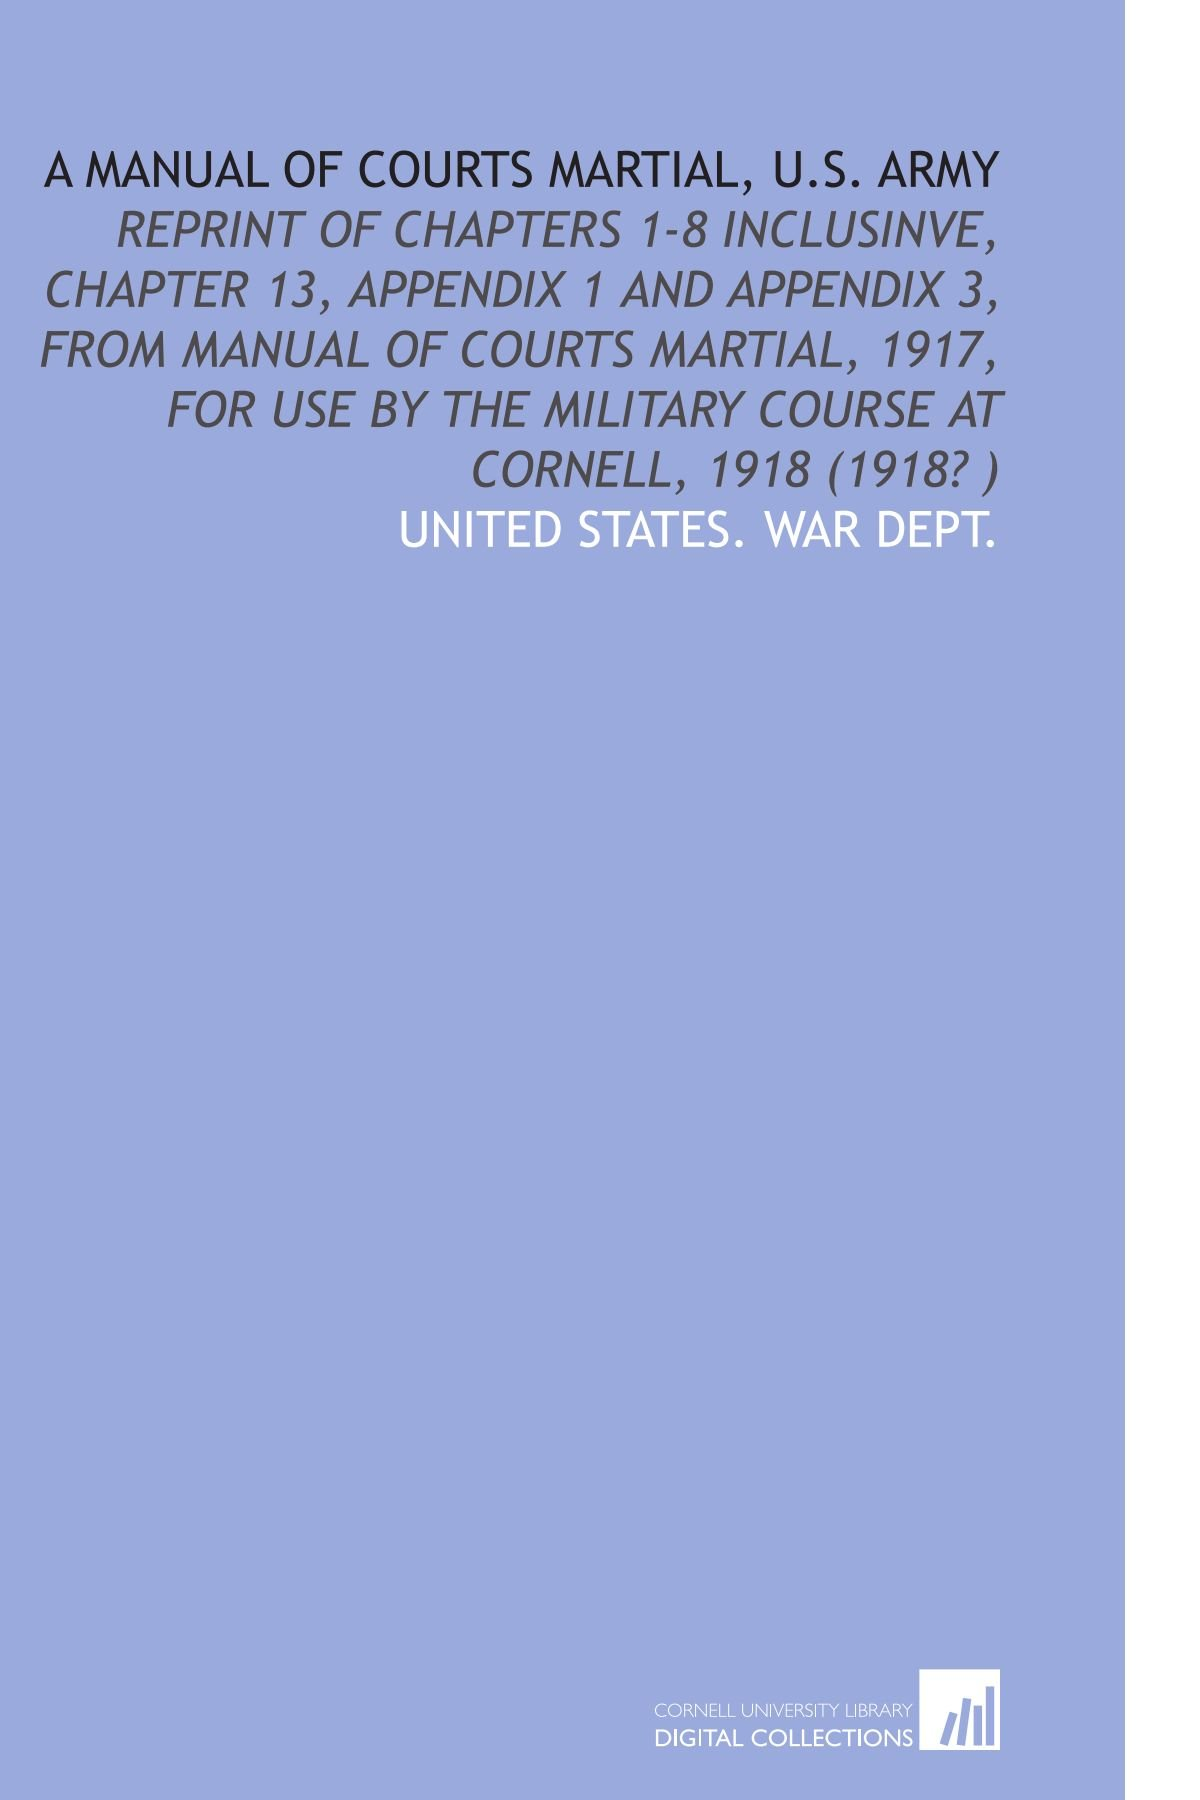 A Manual of Courts Martial, U.S. Army: Reprint of Chapters 1-8 Inclusinve,  Chapter 13, Appendix 1 and Appendix 3, From Manual of Courts Martial, 1917,  ...